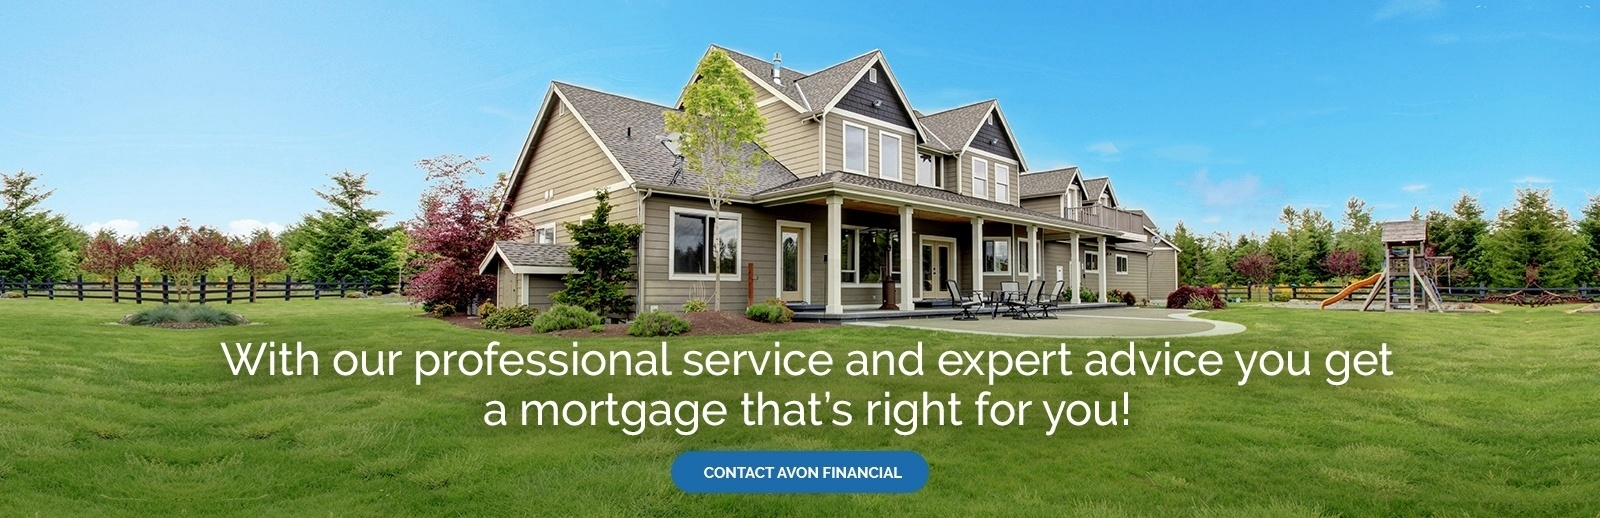 Mortgage Services Brampton ON